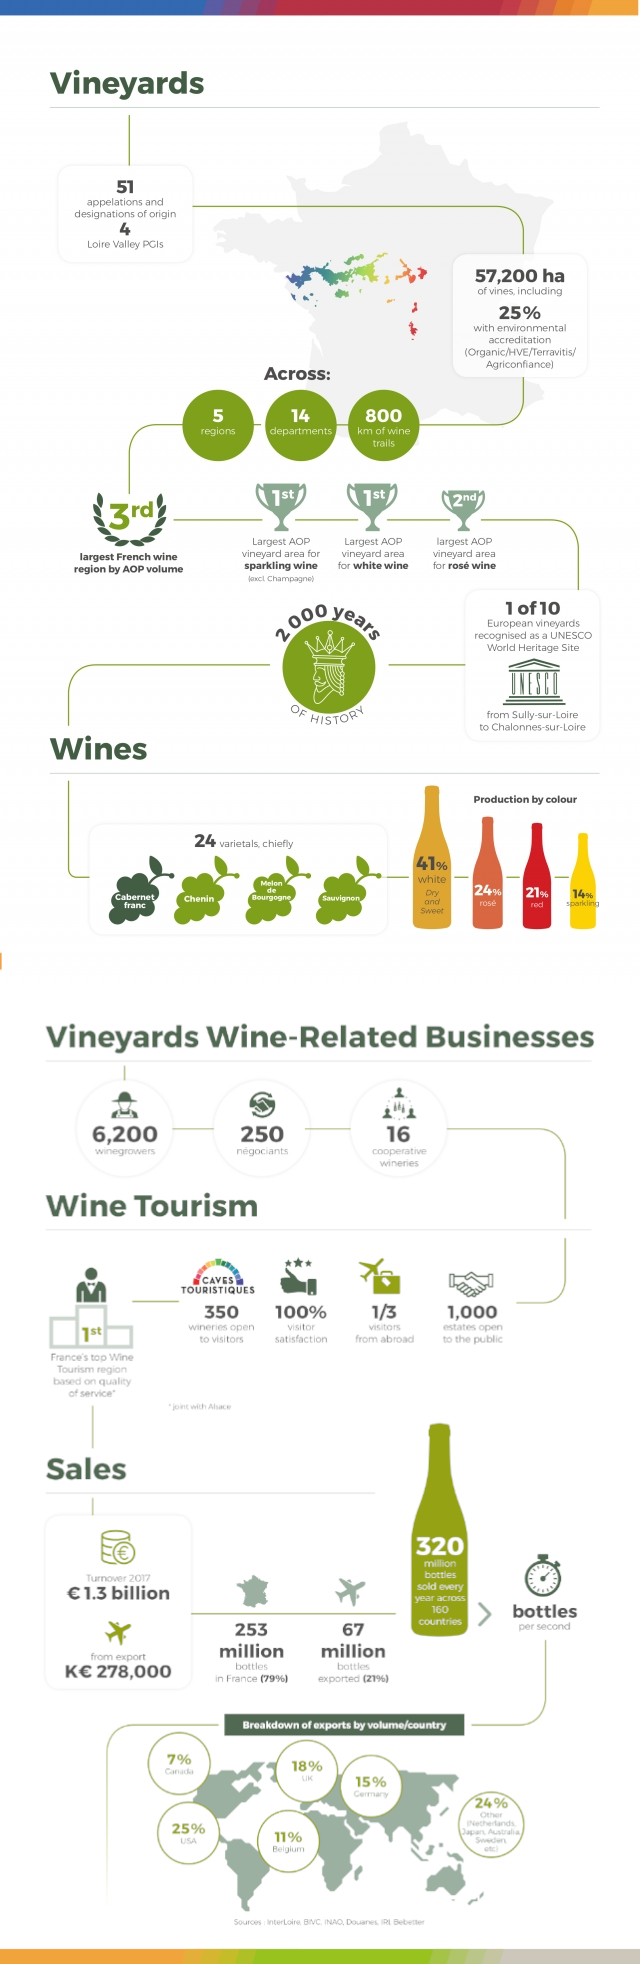 Loire Valley Wines Key Figures